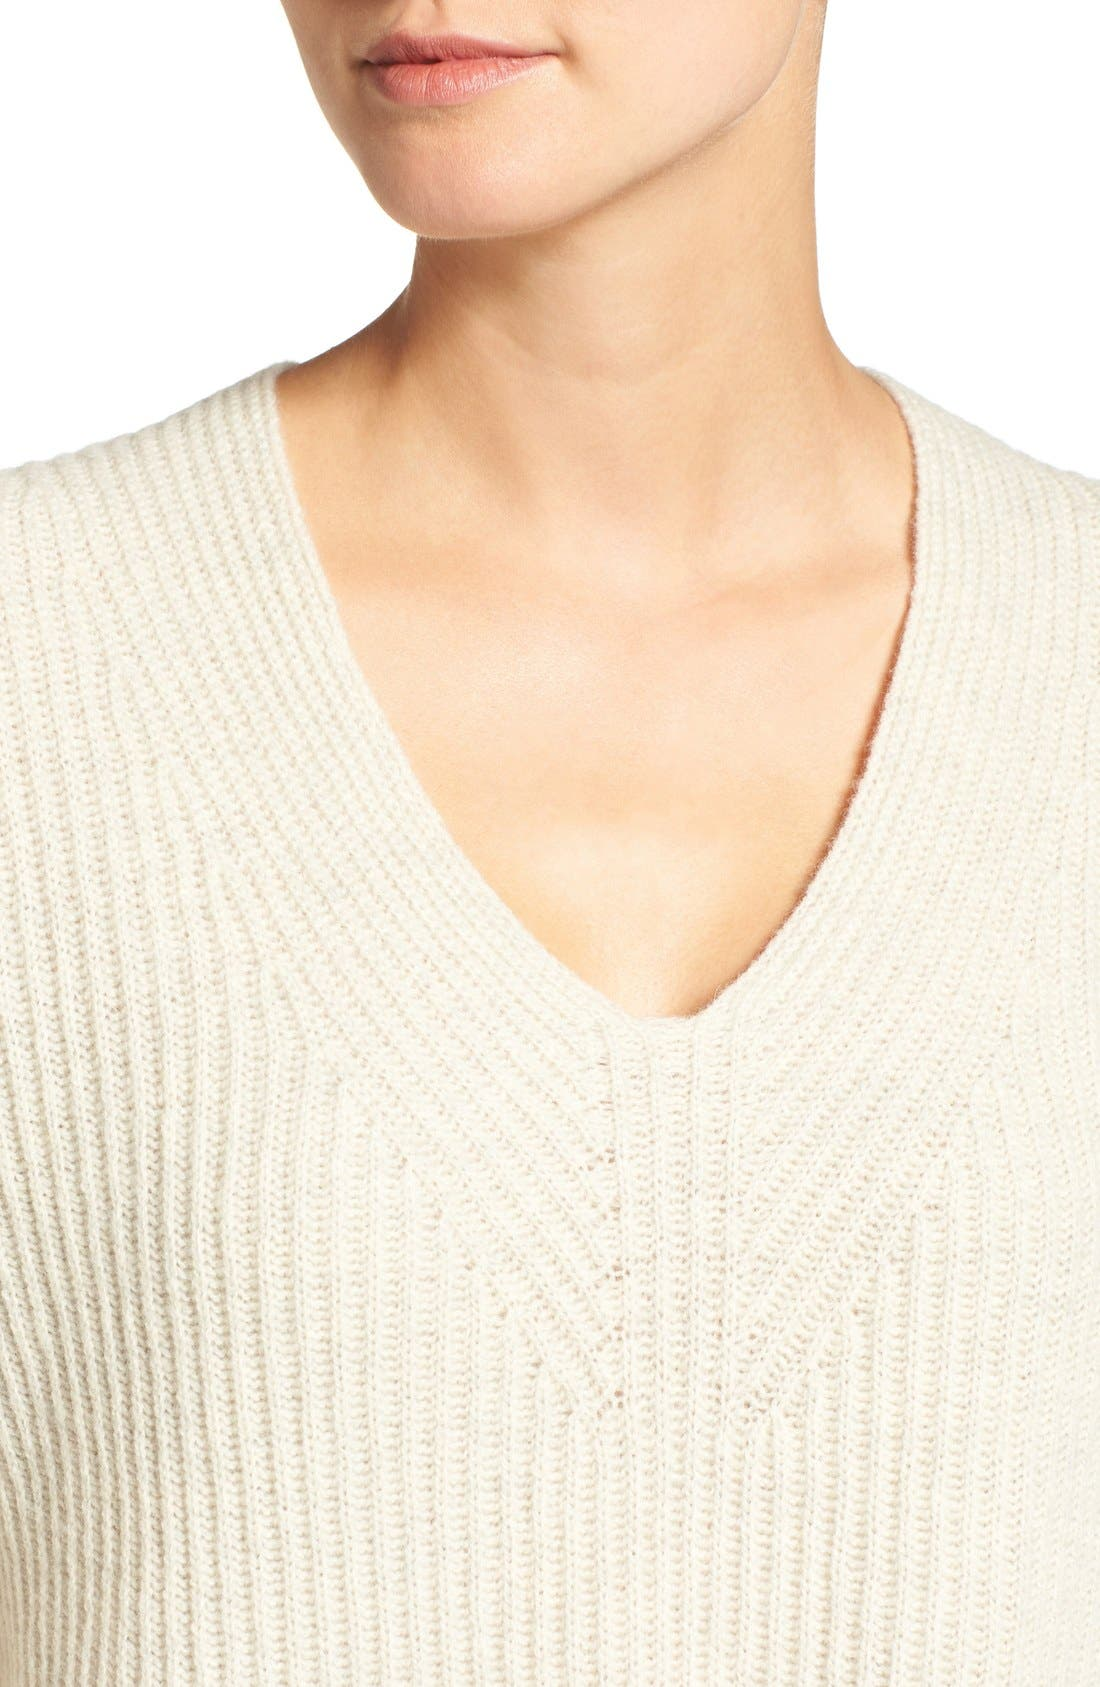 Woodside Pullover Sweater,                             Alternate thumbnail 32, color,